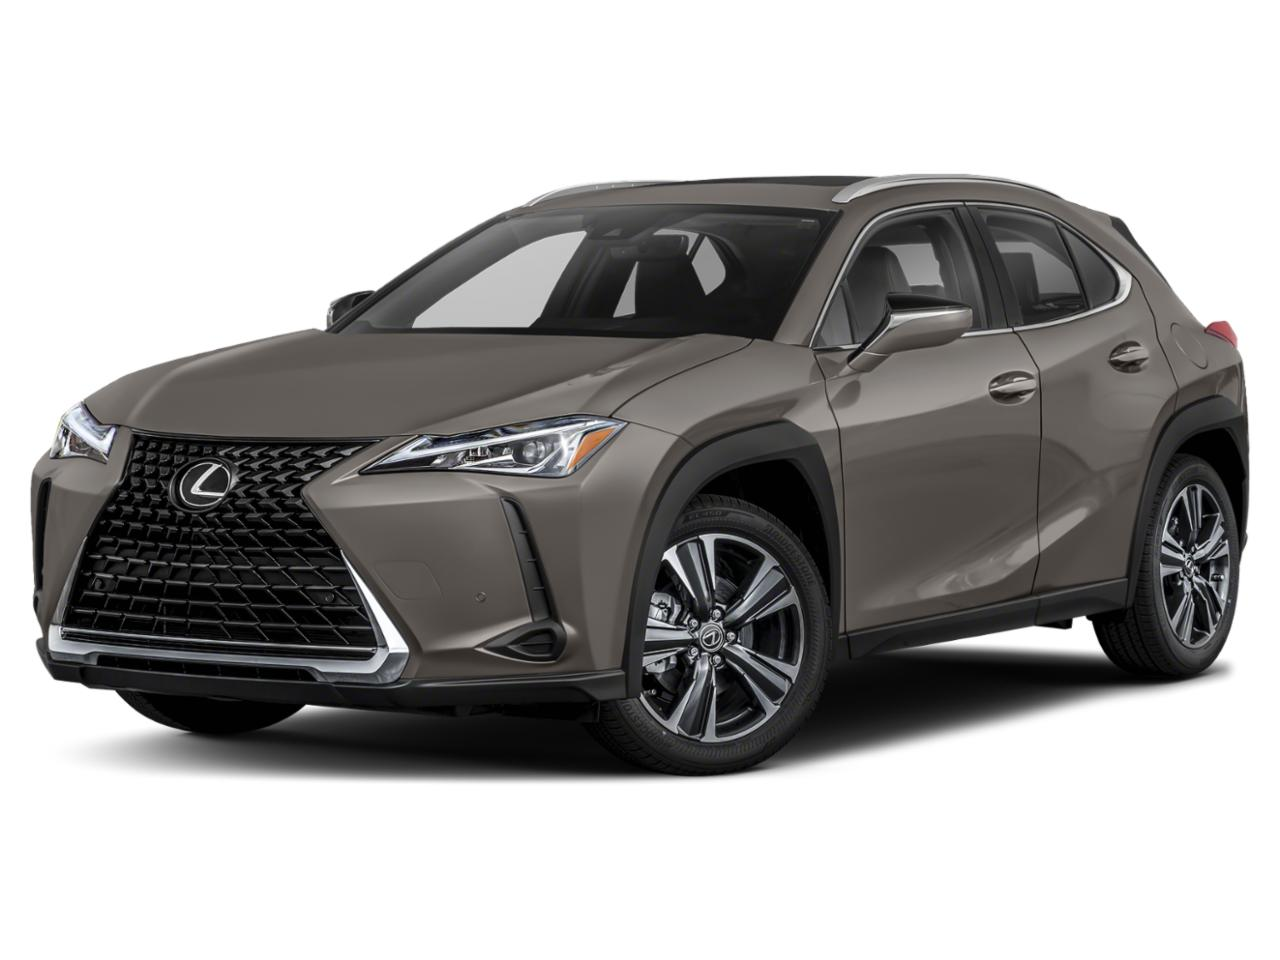 2020 Lexus UX Vehicle Photo in Dallas, TX 75235